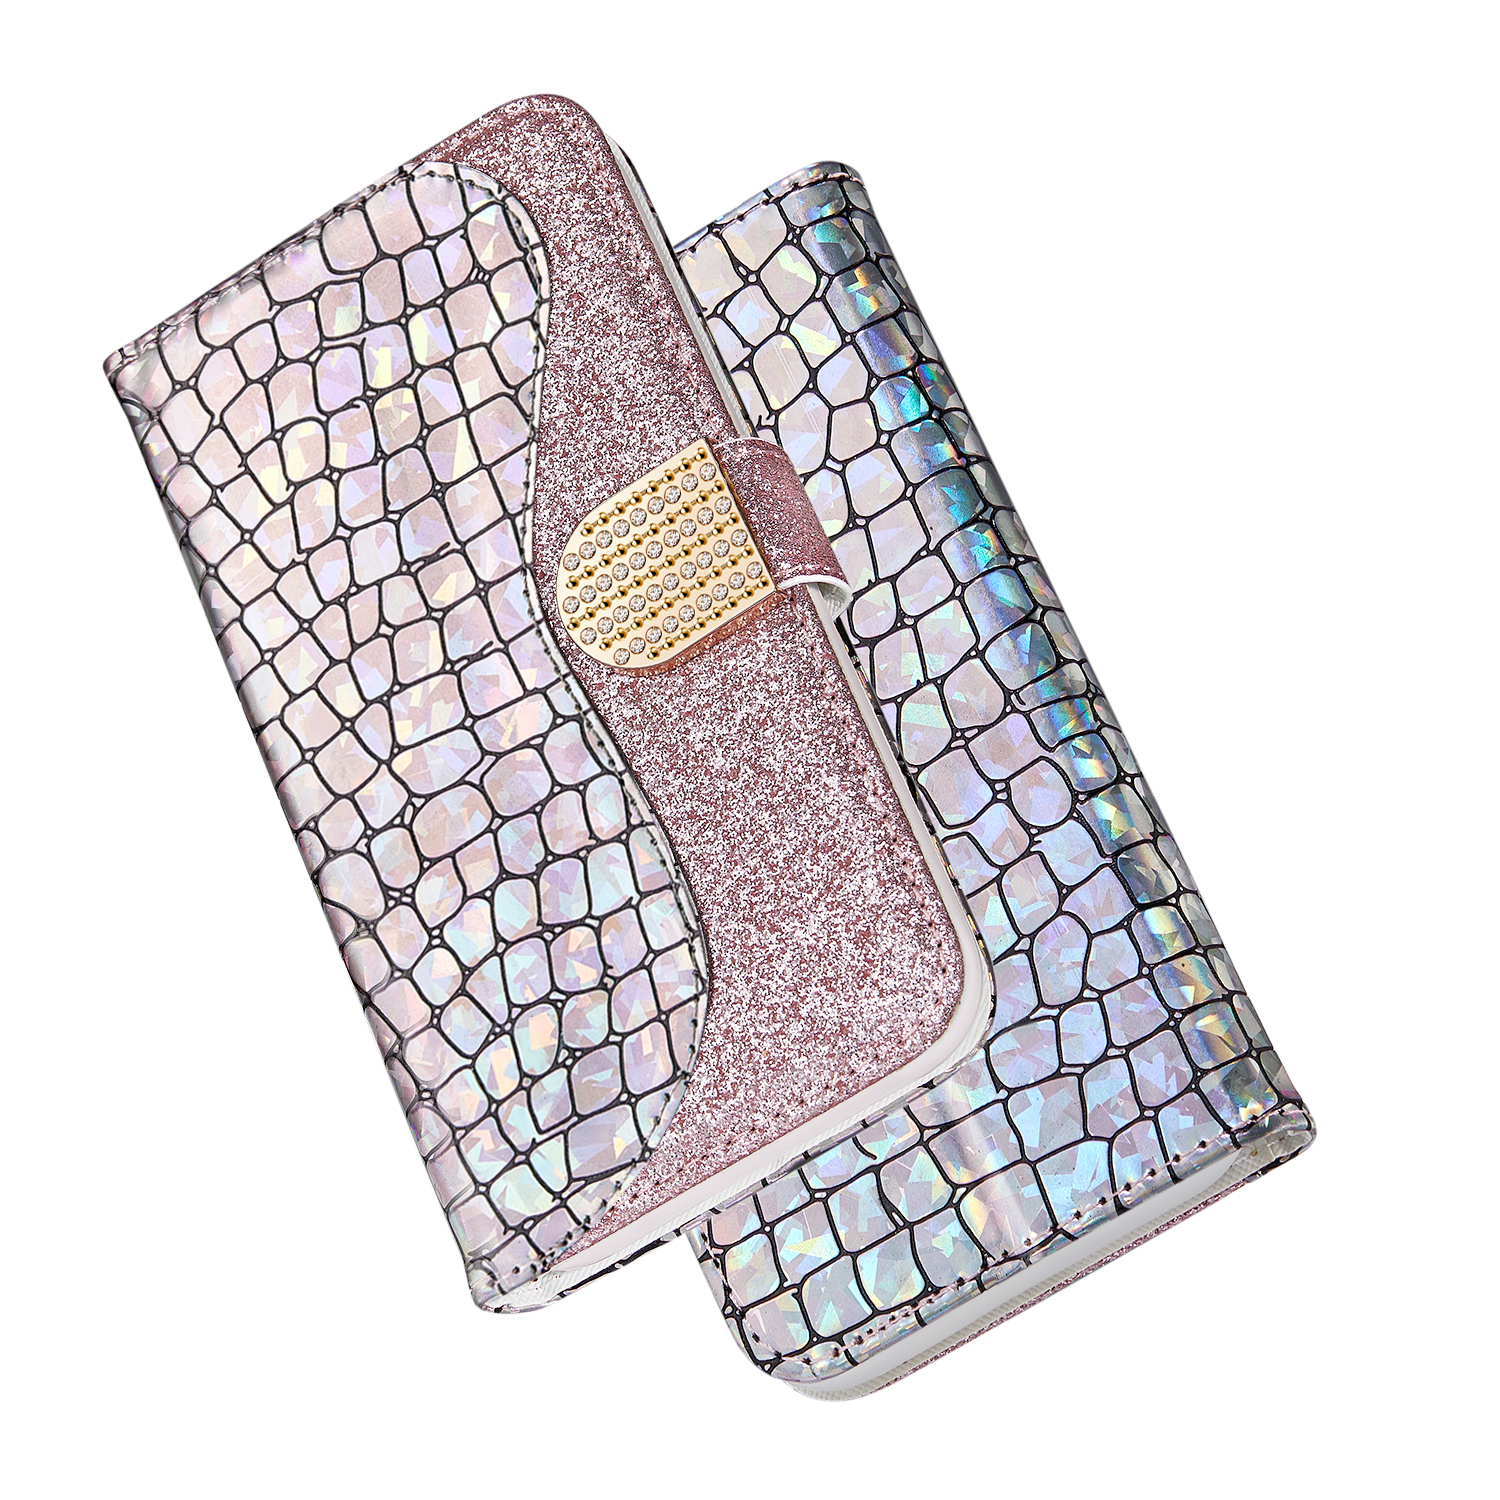 <font><b>Glitter</b></font> Leather <font><b>Case</b></font> for <font><b>Huawei</b></font> Honor 7A Pro 8A 7C 7S 10 Lite Flip Book <font><b>Case</b></font> For <font><b>Huawei</b></font> P30 Pro P20 Lite <font><b>Y5</b></font> Y6 Prime <font><b>2019</b></font> 2018 image